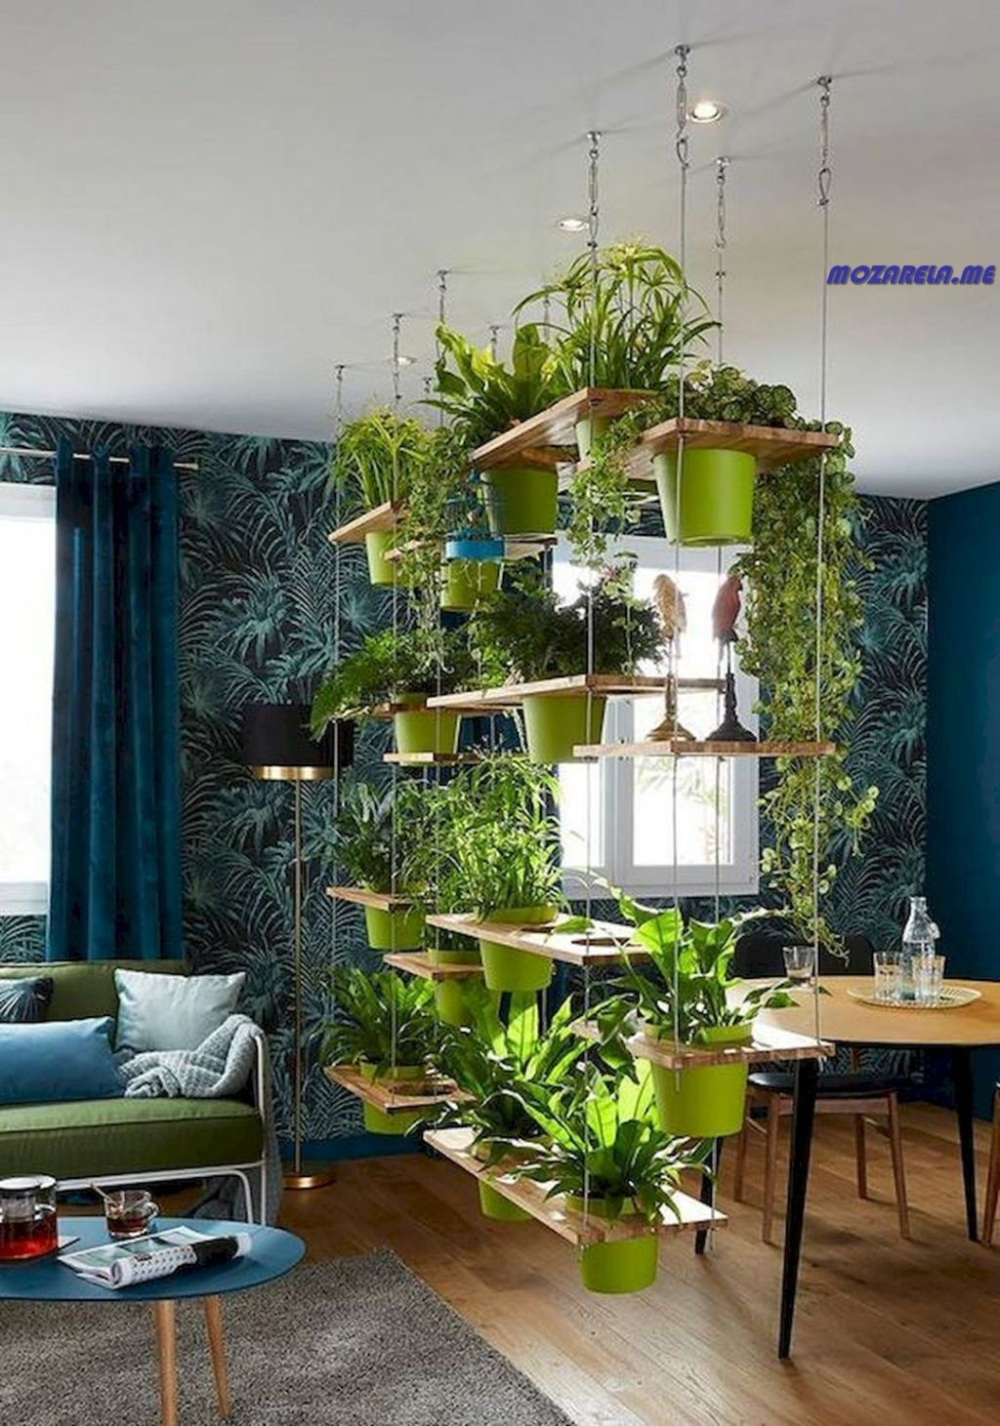 10 Diy Indoor Plants Ideas To Fill Your Living Room With Greenery Mozarella In 2020 Plants Indoor Apartment Plant Decor Indoor Room With Plants